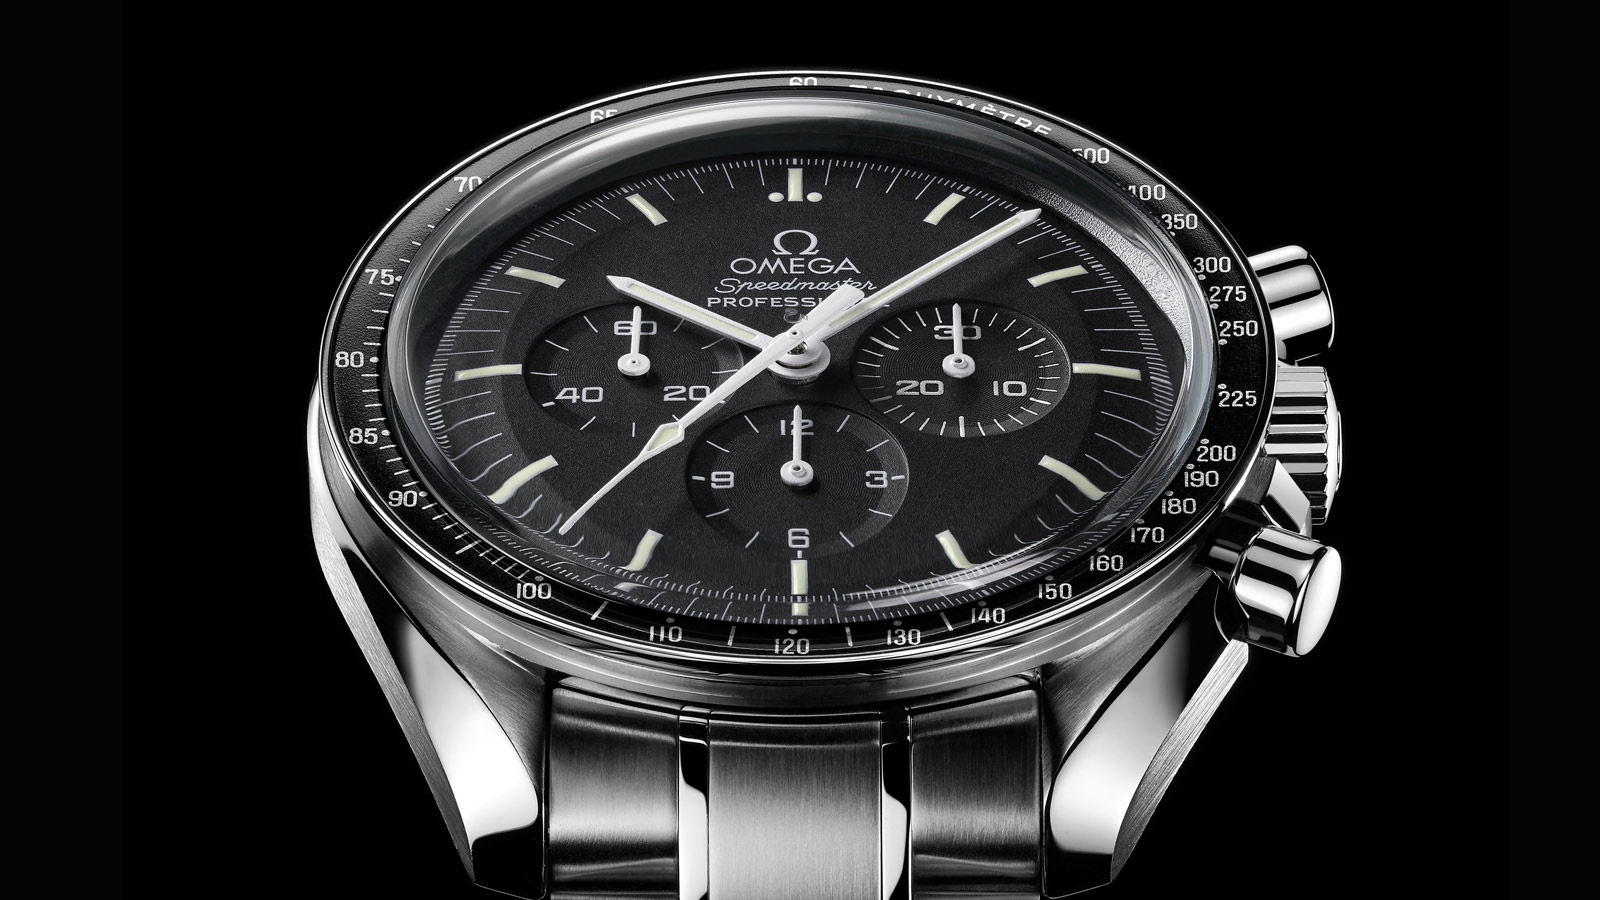 Speedmaster ムーンウォッチ Moonwatch Professional Chronograph 42 mm - 311.30.42.30.01.005 - ビュー 3